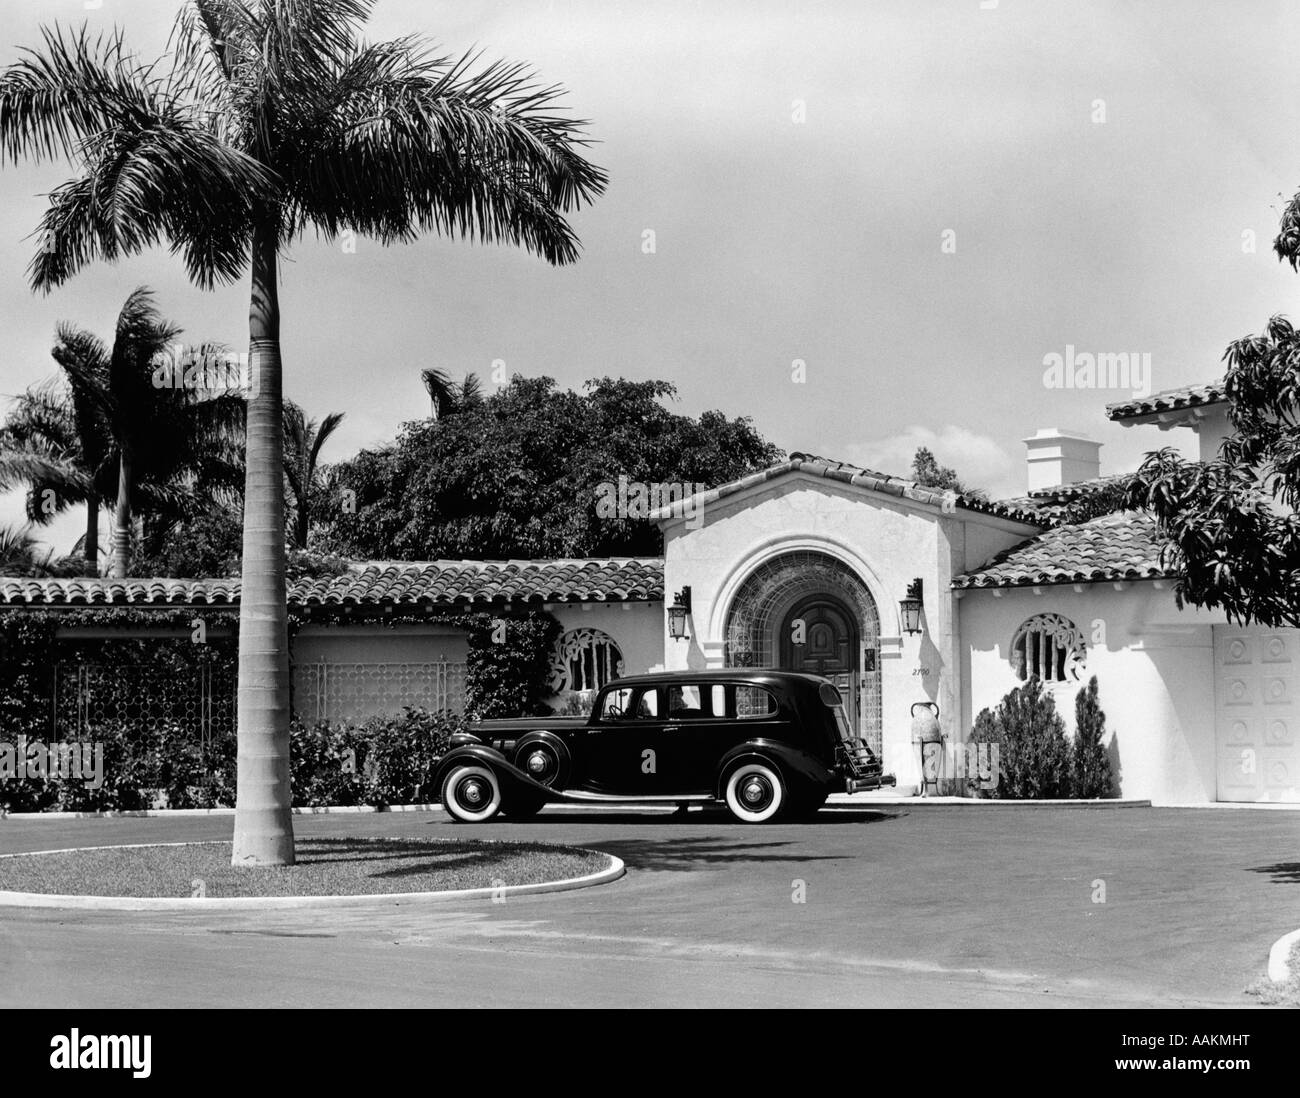 1930s CAR IN CIRCULAR DRIVEWAY OF TROPICAL STUCCO SPANISH STYLE HOME IN SUNSET ISLANDS MIAMI BEACH FLORIDA USA - Stock Image